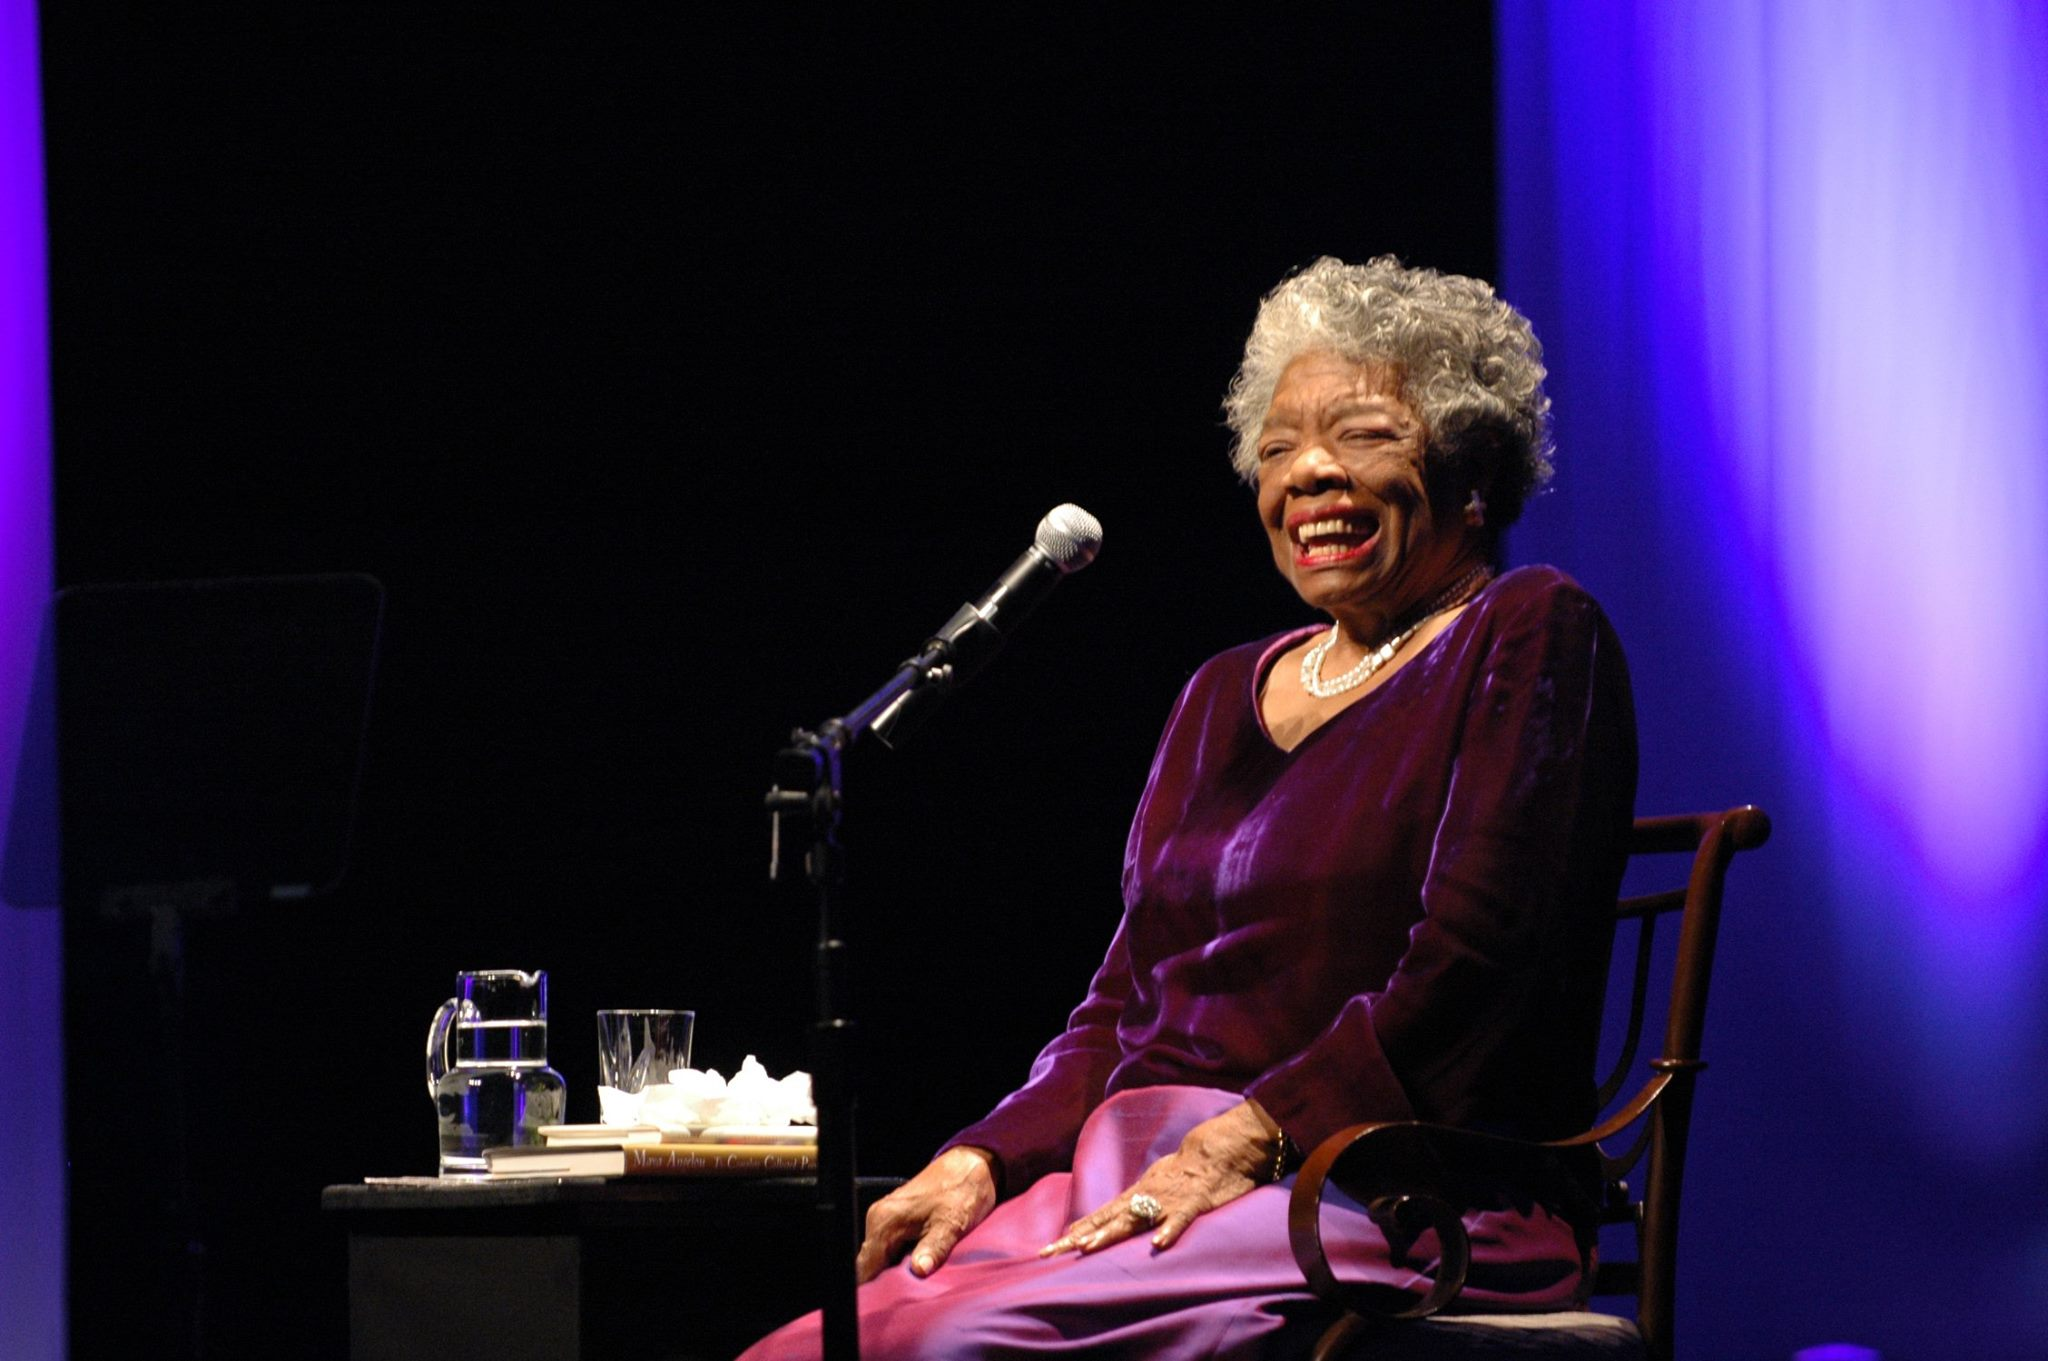 http://www.plansofactionhouston.com/wp-content/uploads/2020/05/Dr-Maya-Angelou-on-Stage.jpg